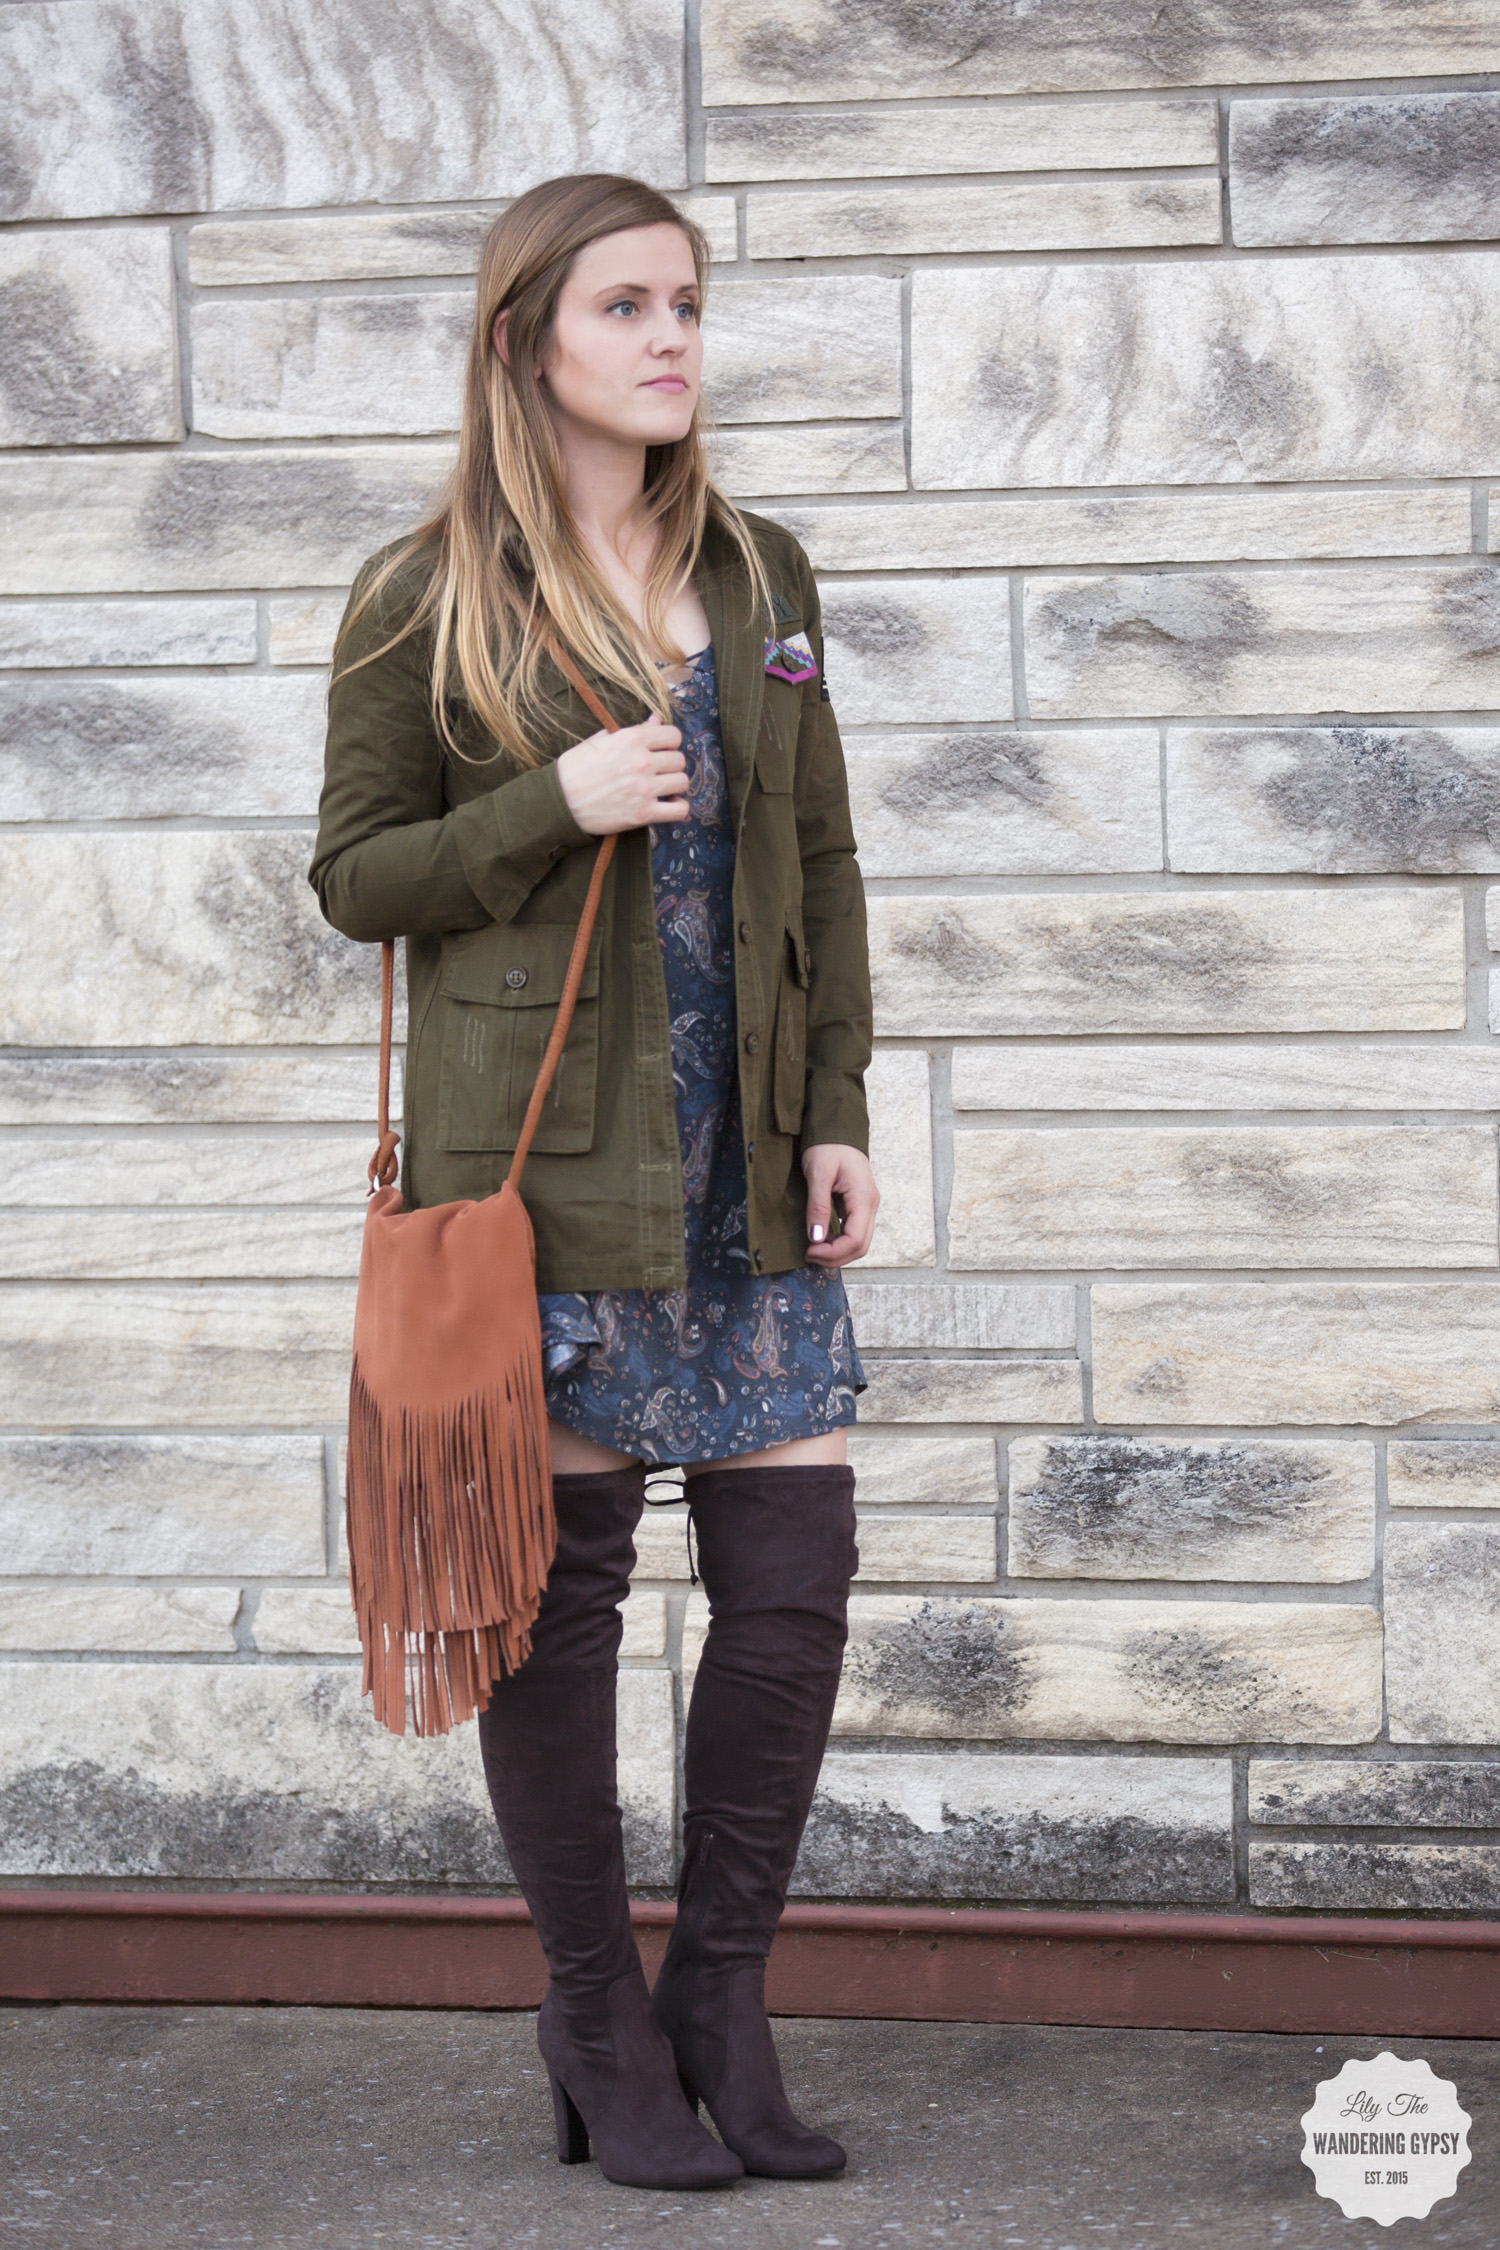 #MyDSW - love this outfit!